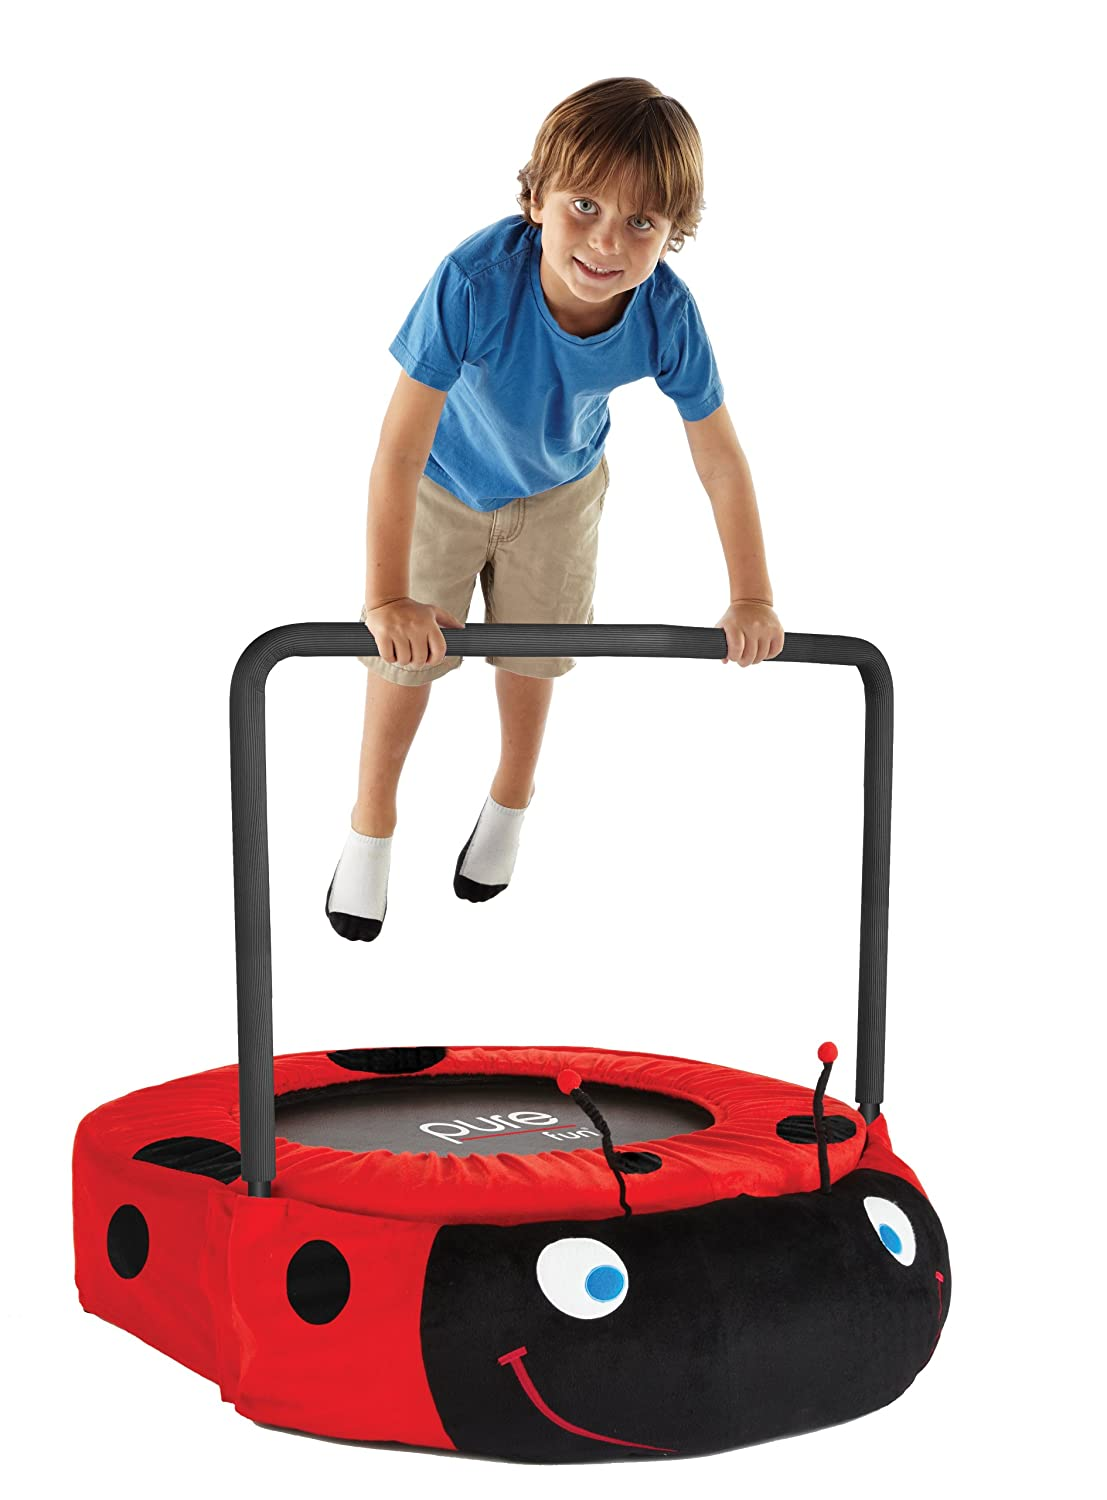 Best Ts And Toys For 5 Year Old Boys